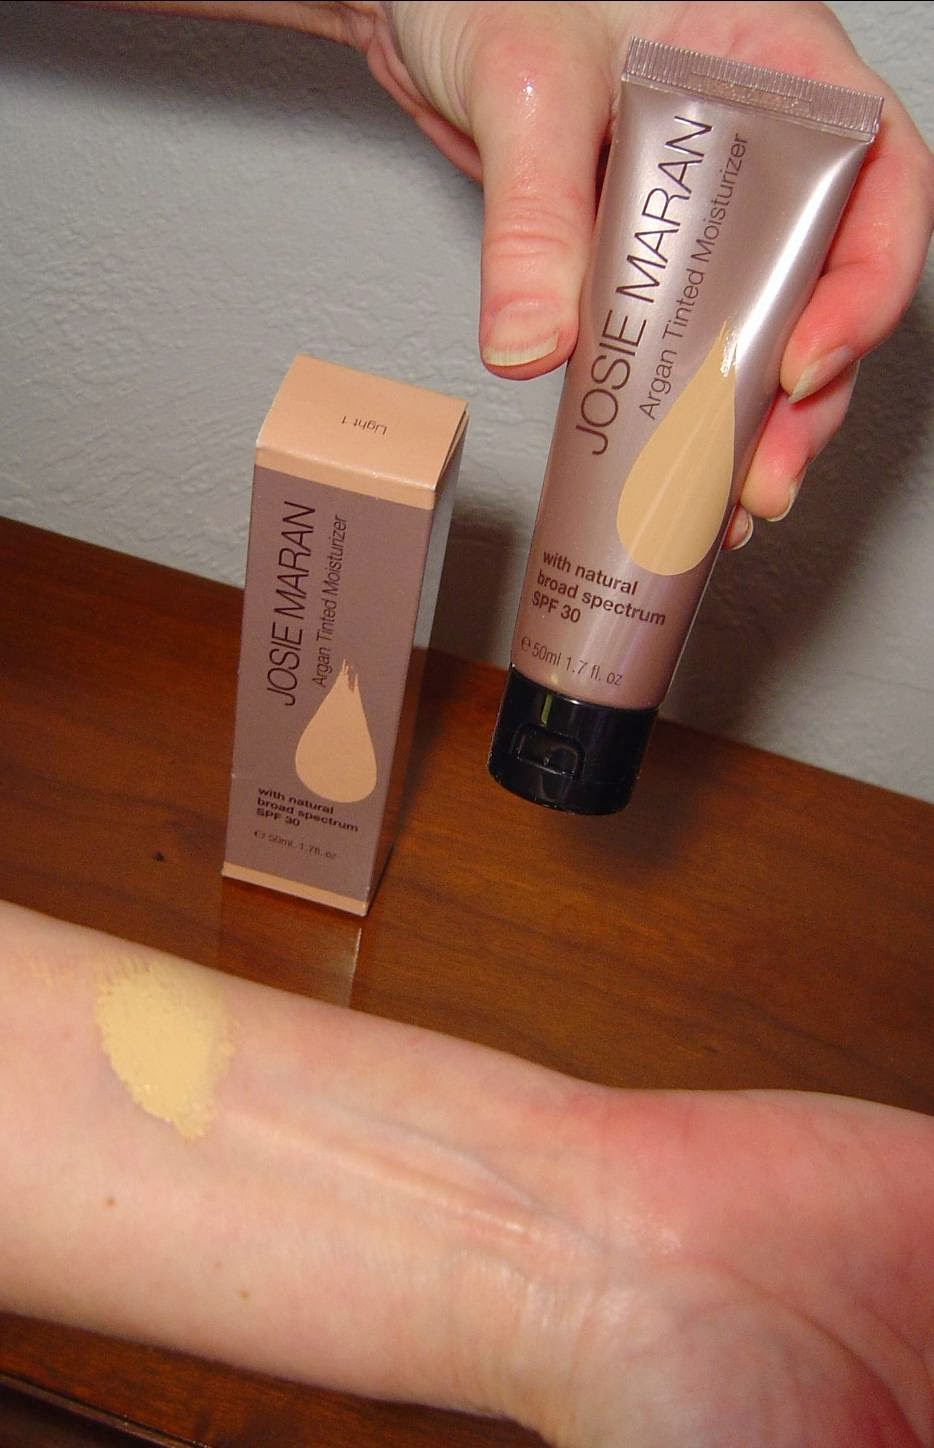 Argan Tinted Moisturizer Light 1 swatch.jpeg